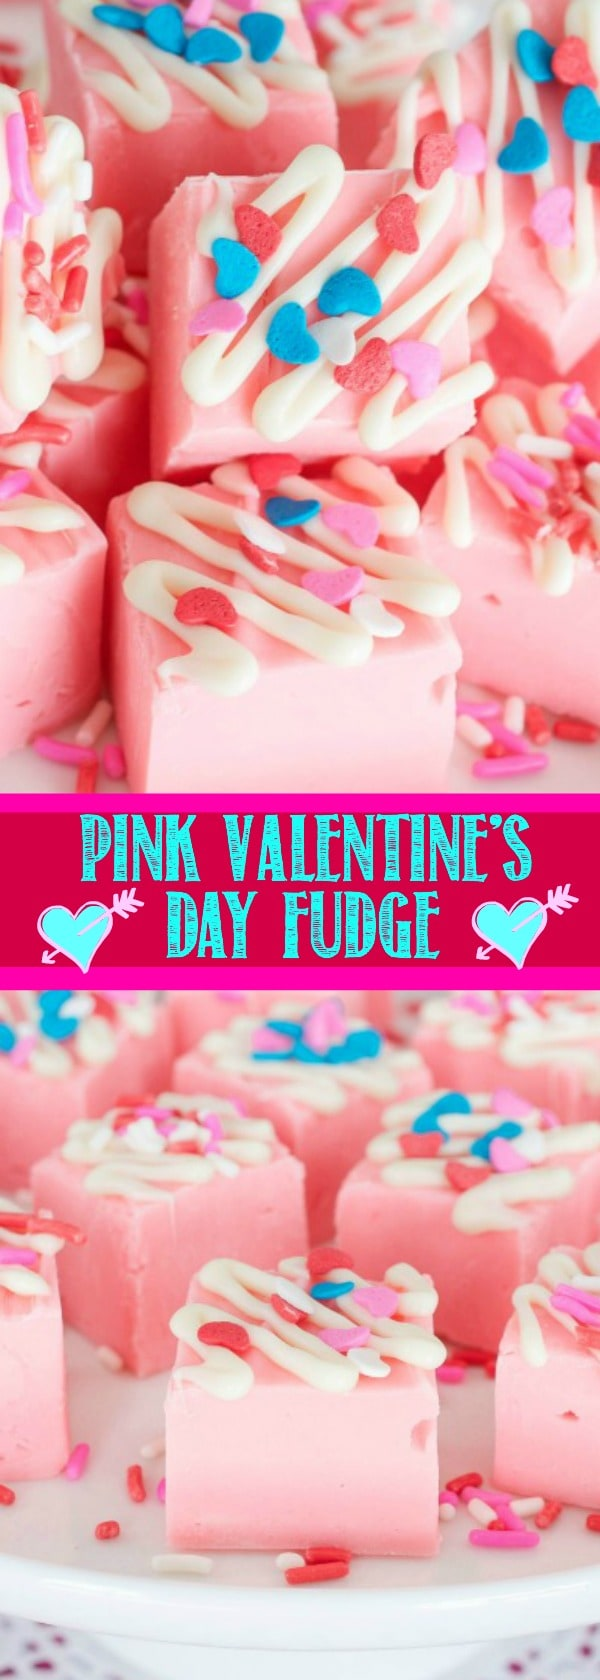 Pink Valentine's Day Fudge | Back For Seconds - Easy Valentine's Day Dessert Recipes - Pink and Red Party Treats #valentinesdaydesserts #easyvalentinesdaydesserts #valentinesdaytreats #pinkandred #pinkdesserts #reddesserts #valentinesdayparty #valentinesday